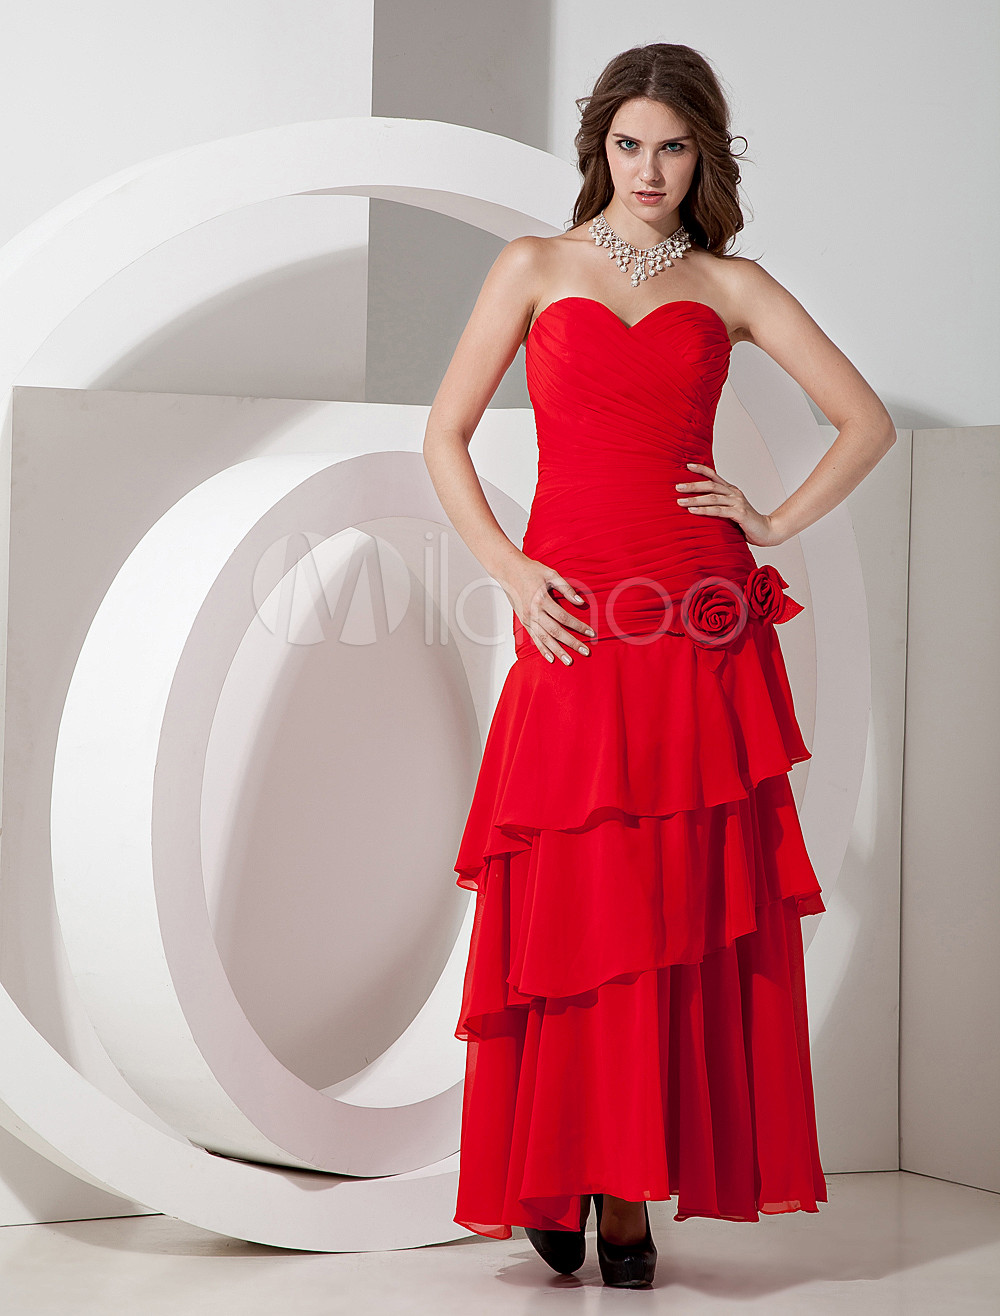 Sweetheart Neck Tiered Chiffon Red Charming Bridesmaid Dress